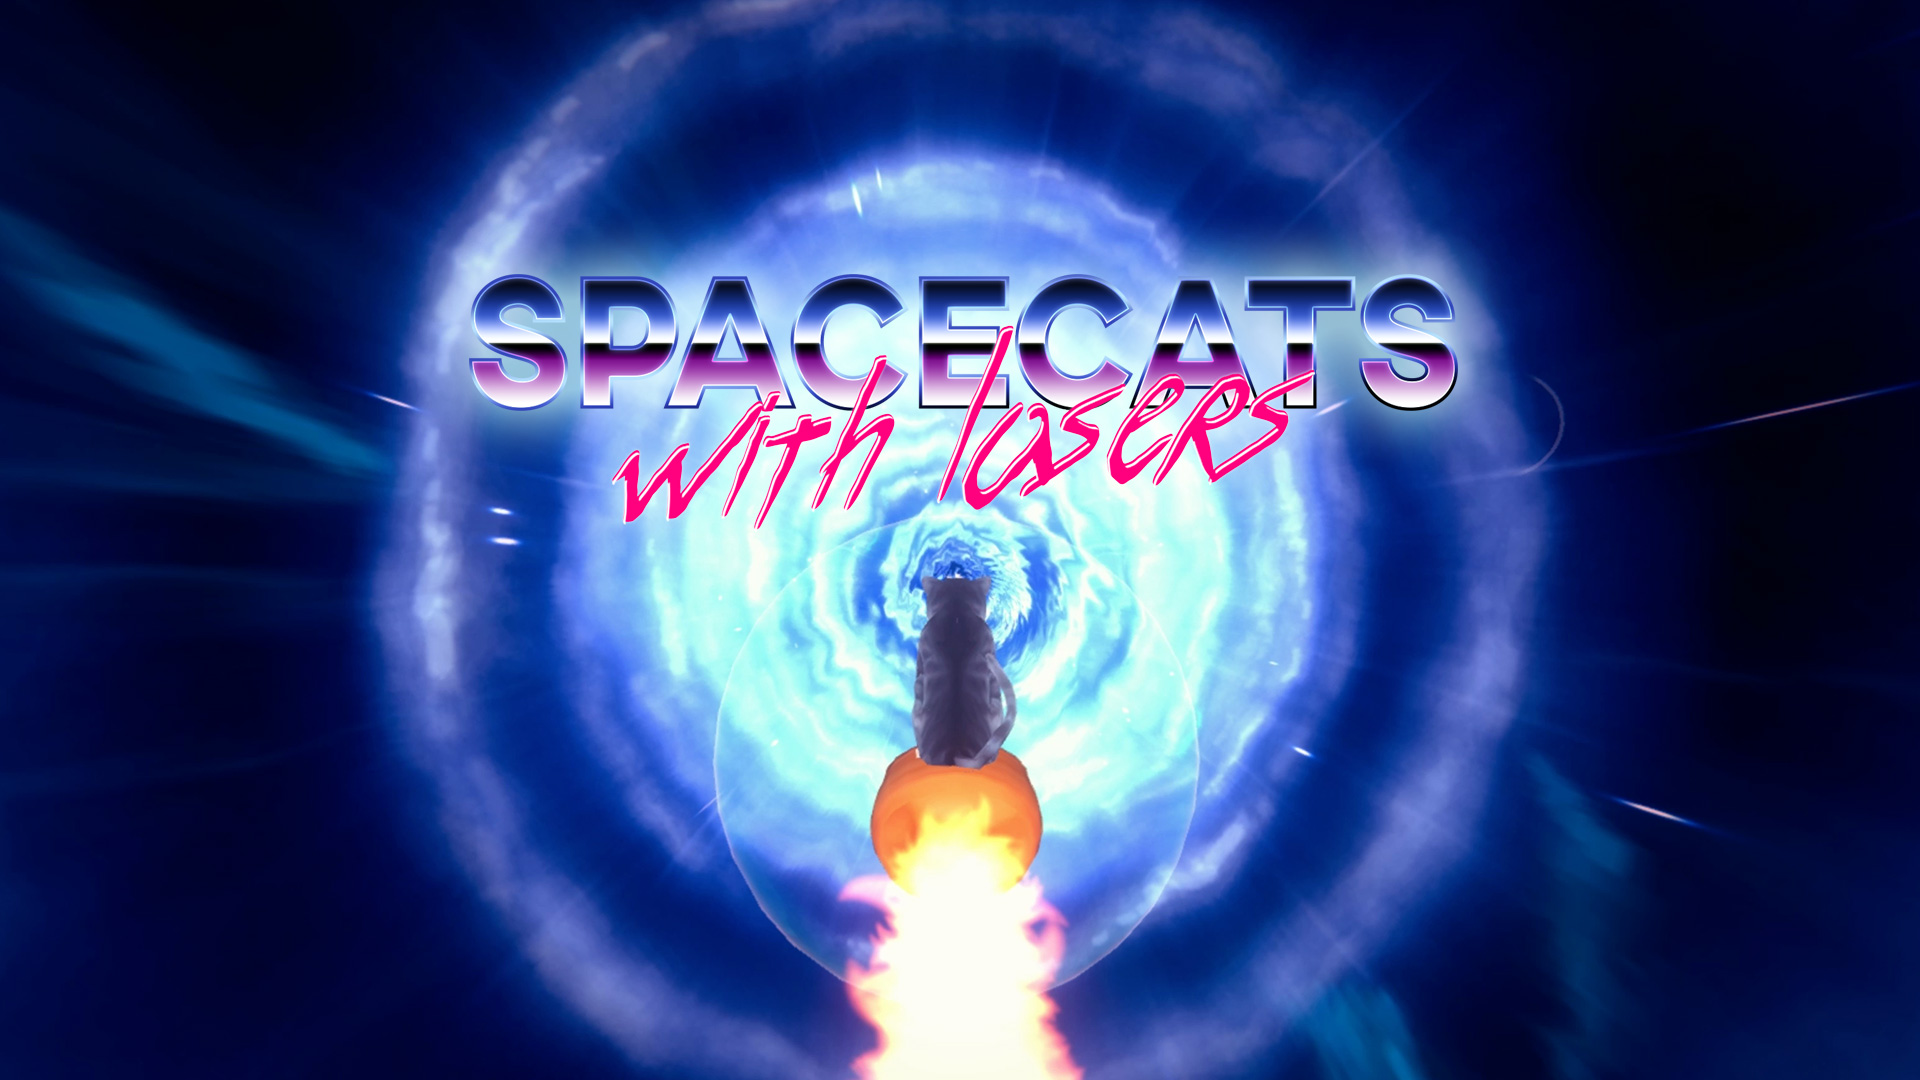 Spacecats with Lasers/Nintendo Switch/eShop Download